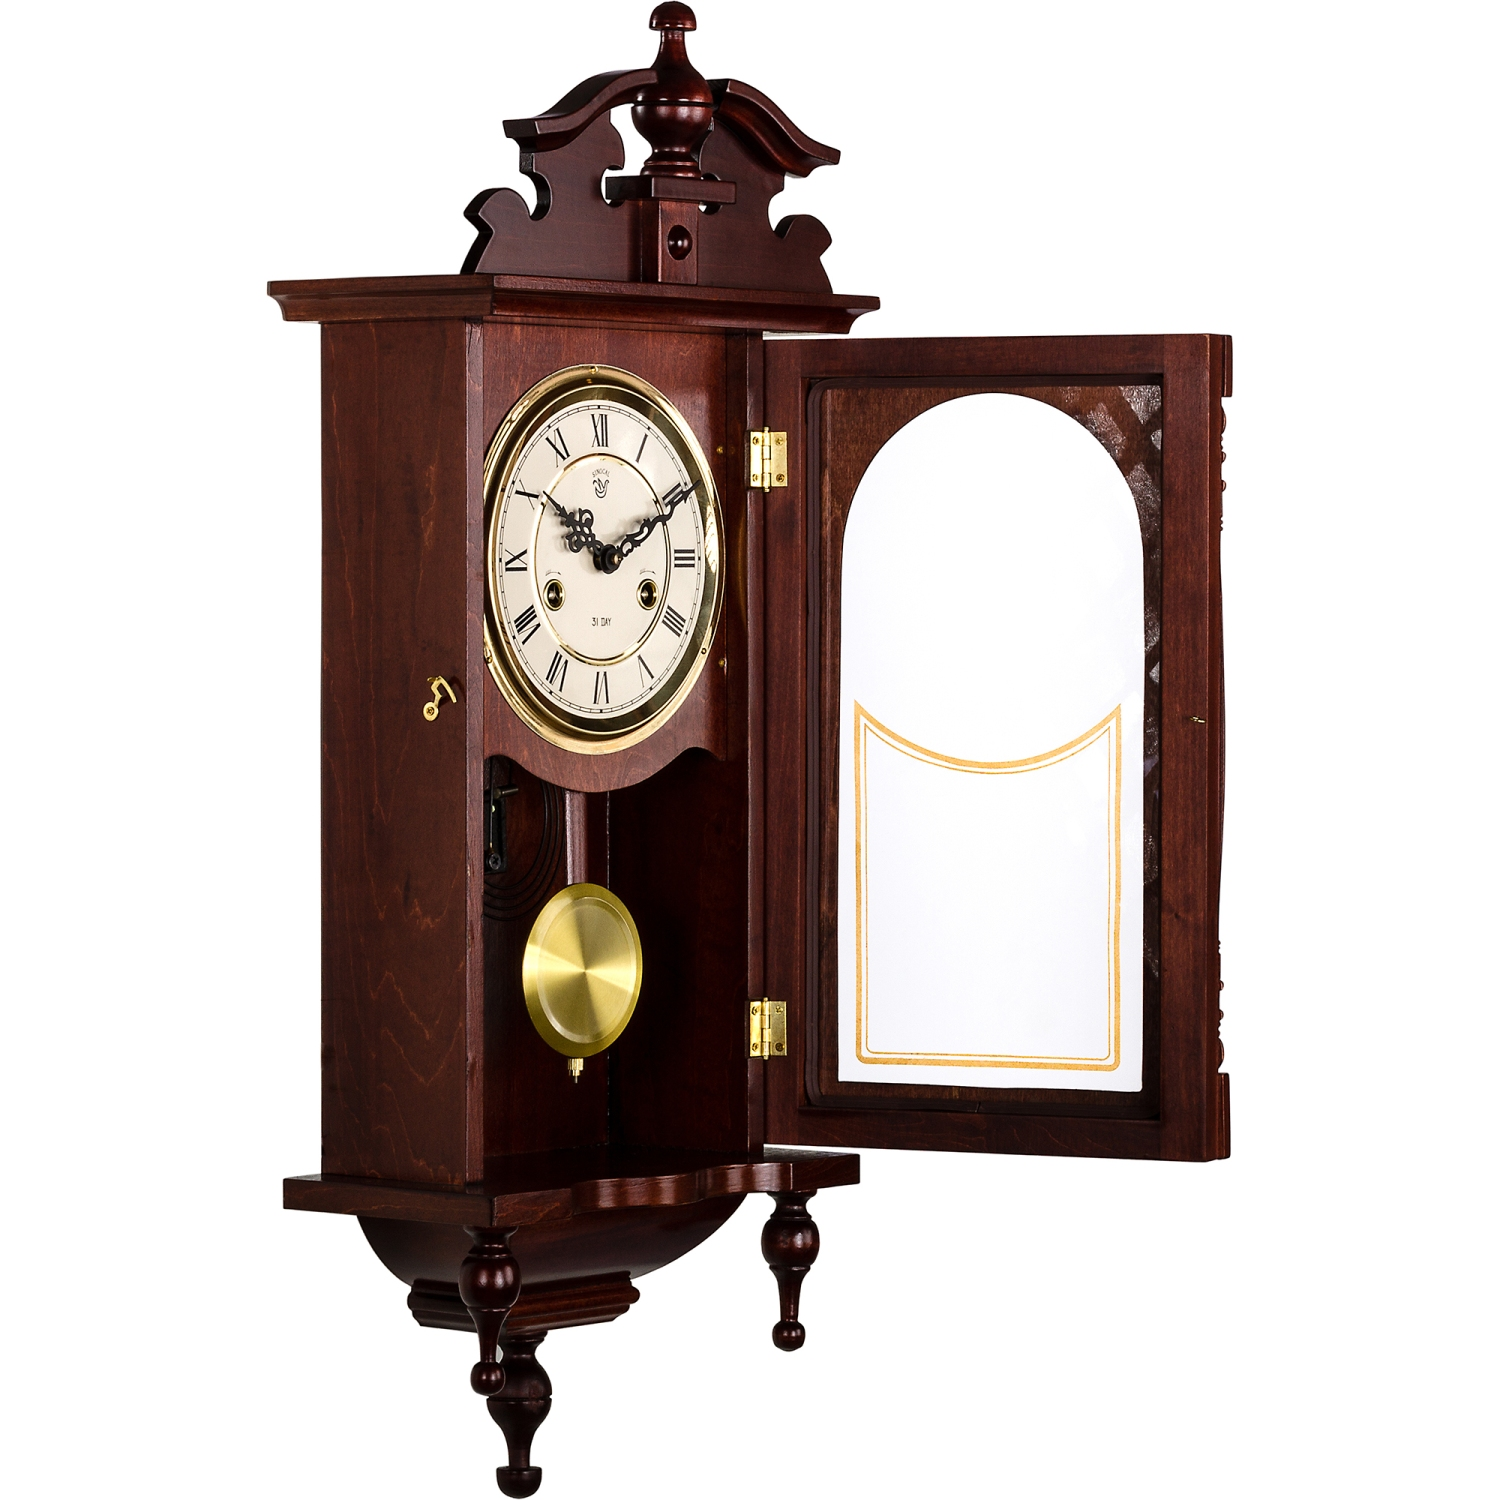 Wall clock orpheus regulator pendulum clock mahagoni ebay - Stylish pendulum wall clock ...